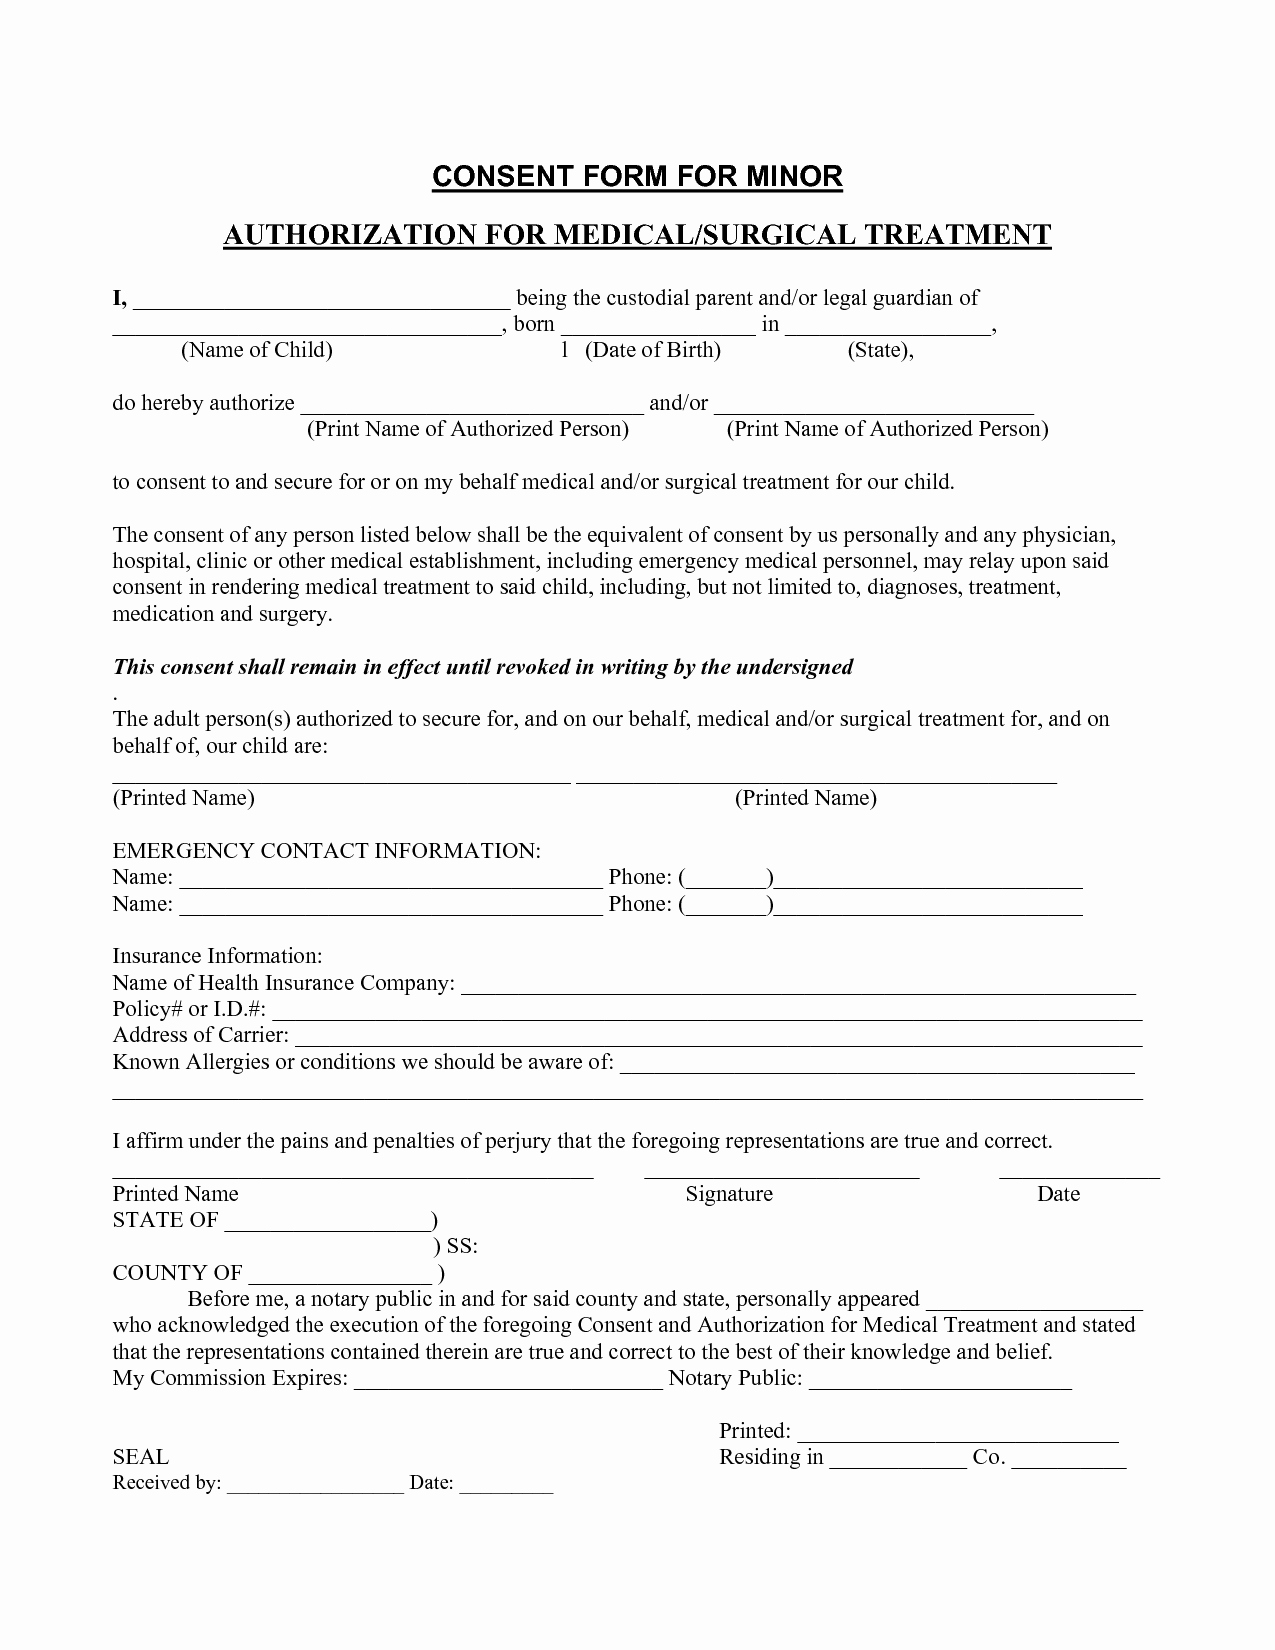 Medical Consent forms Template Unique Medical Consent form Template